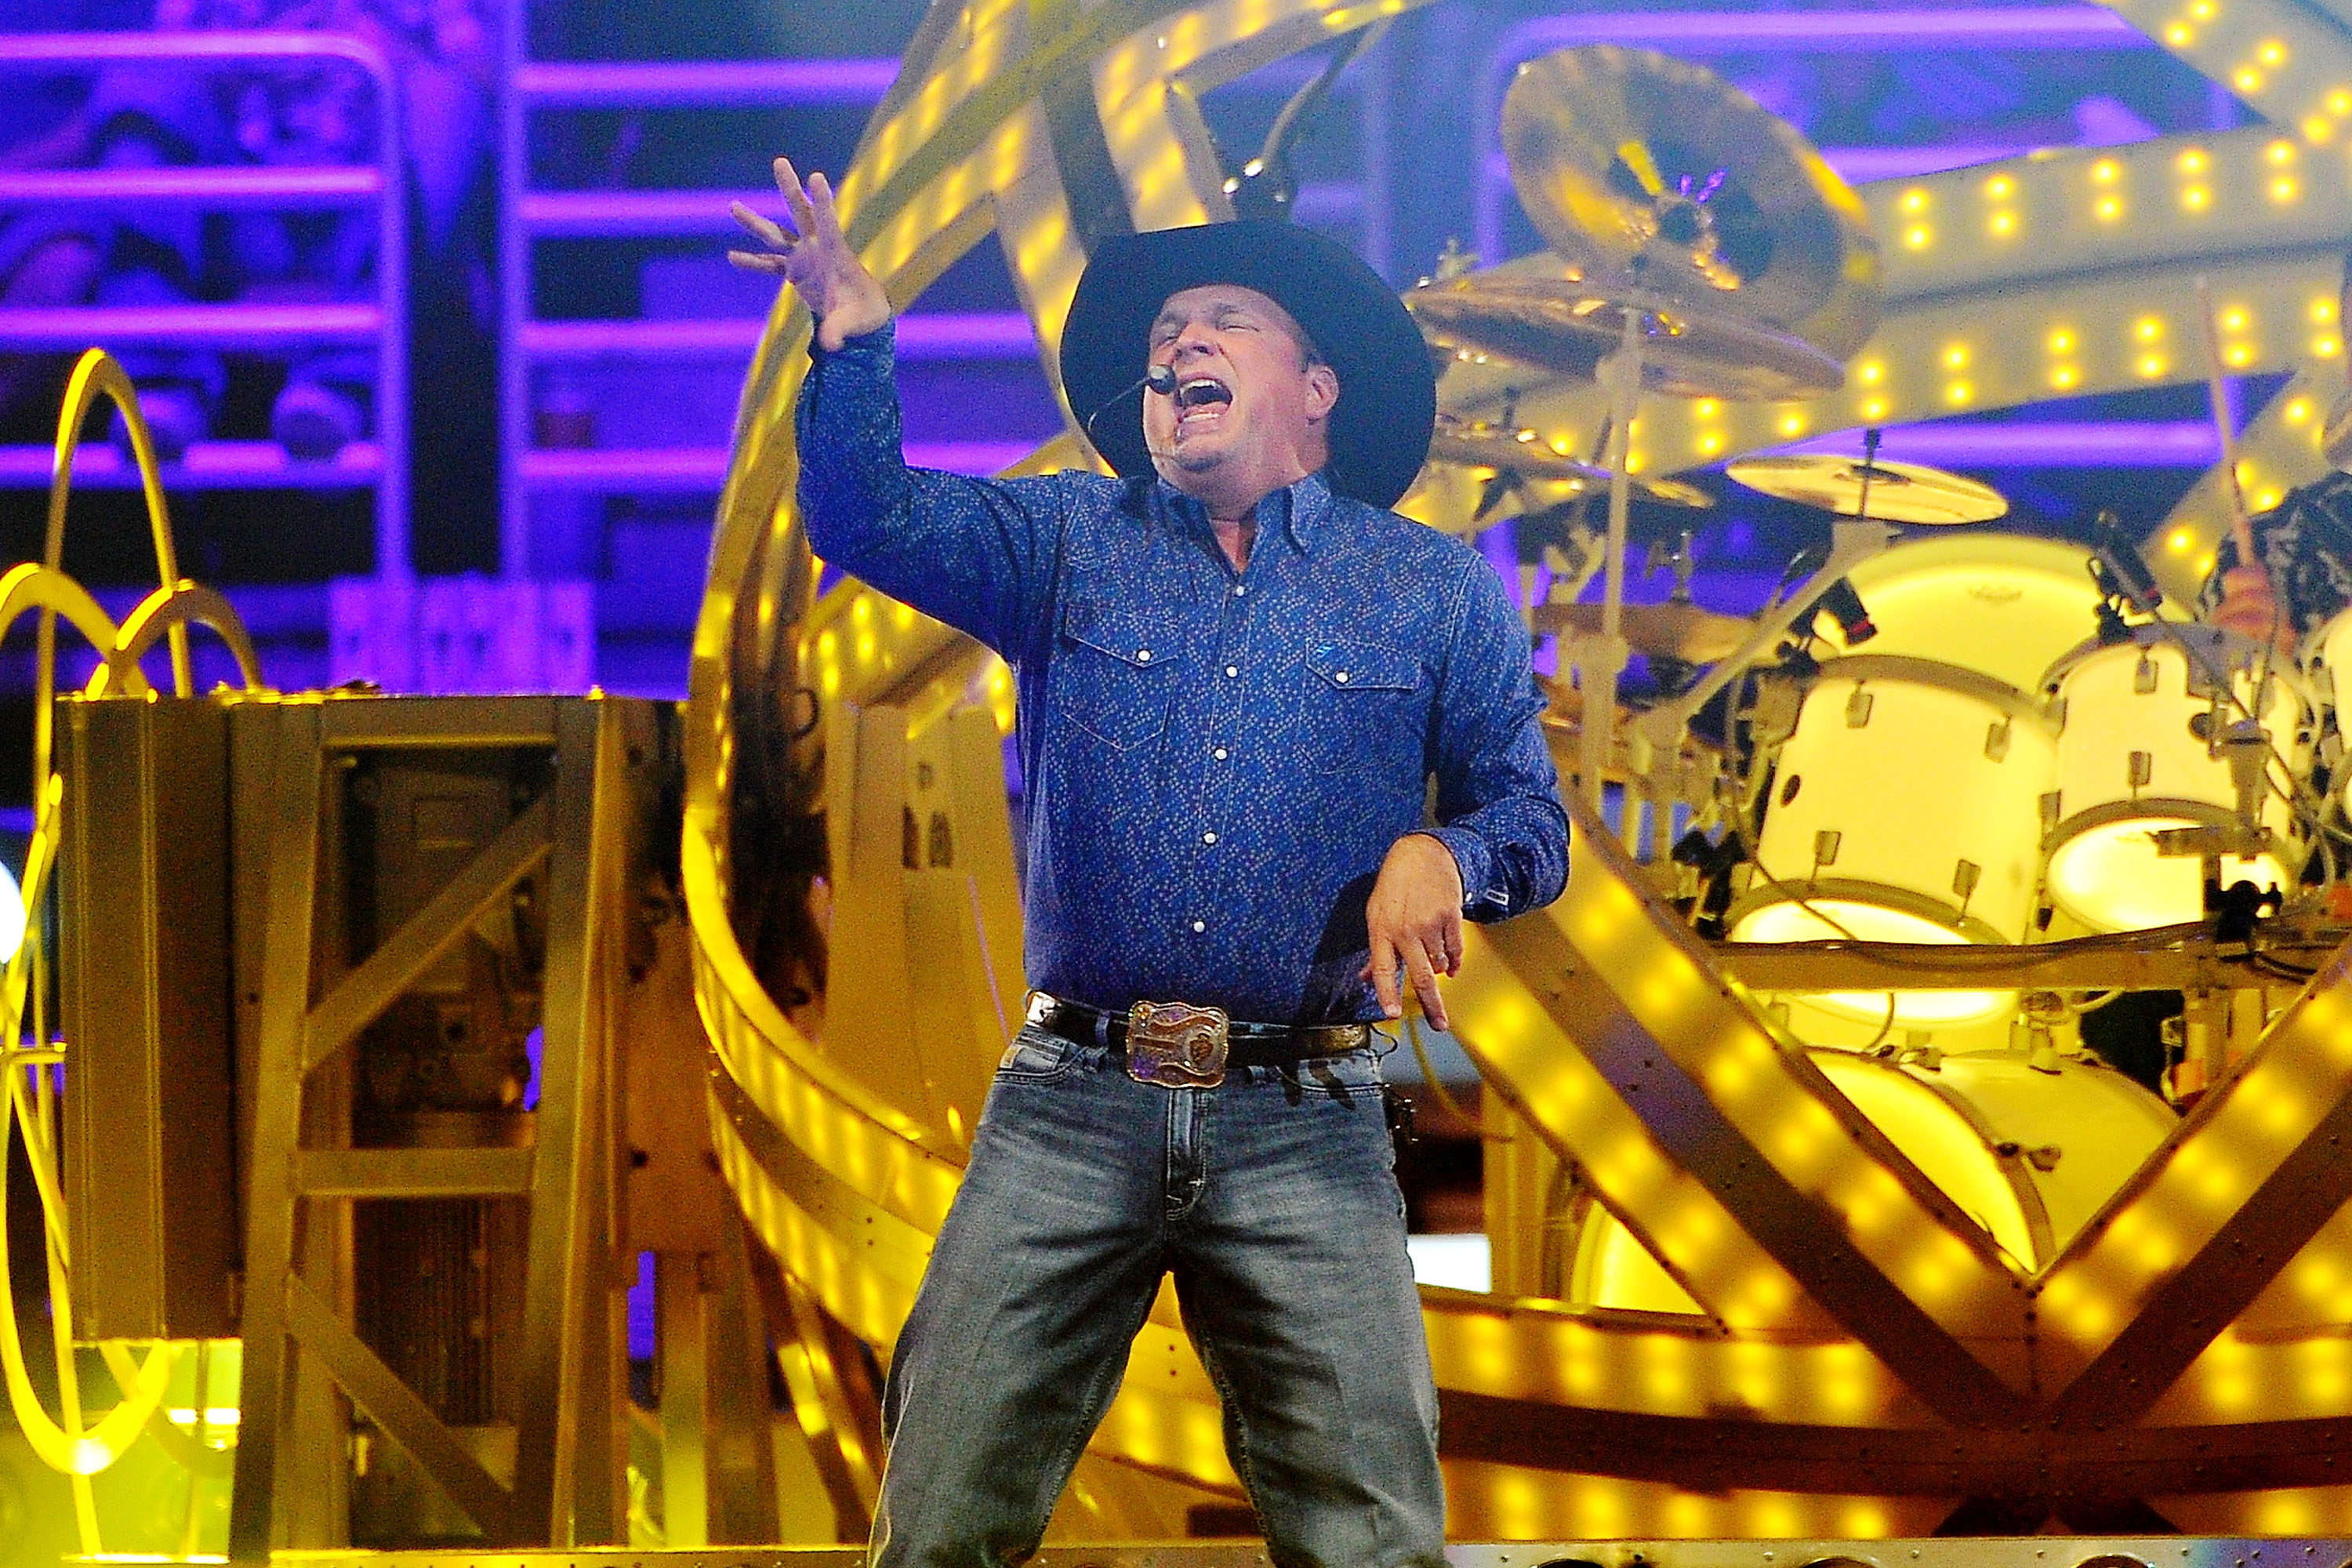 Garth Brooks And Trisha Yearwood Perform At The Honda Center